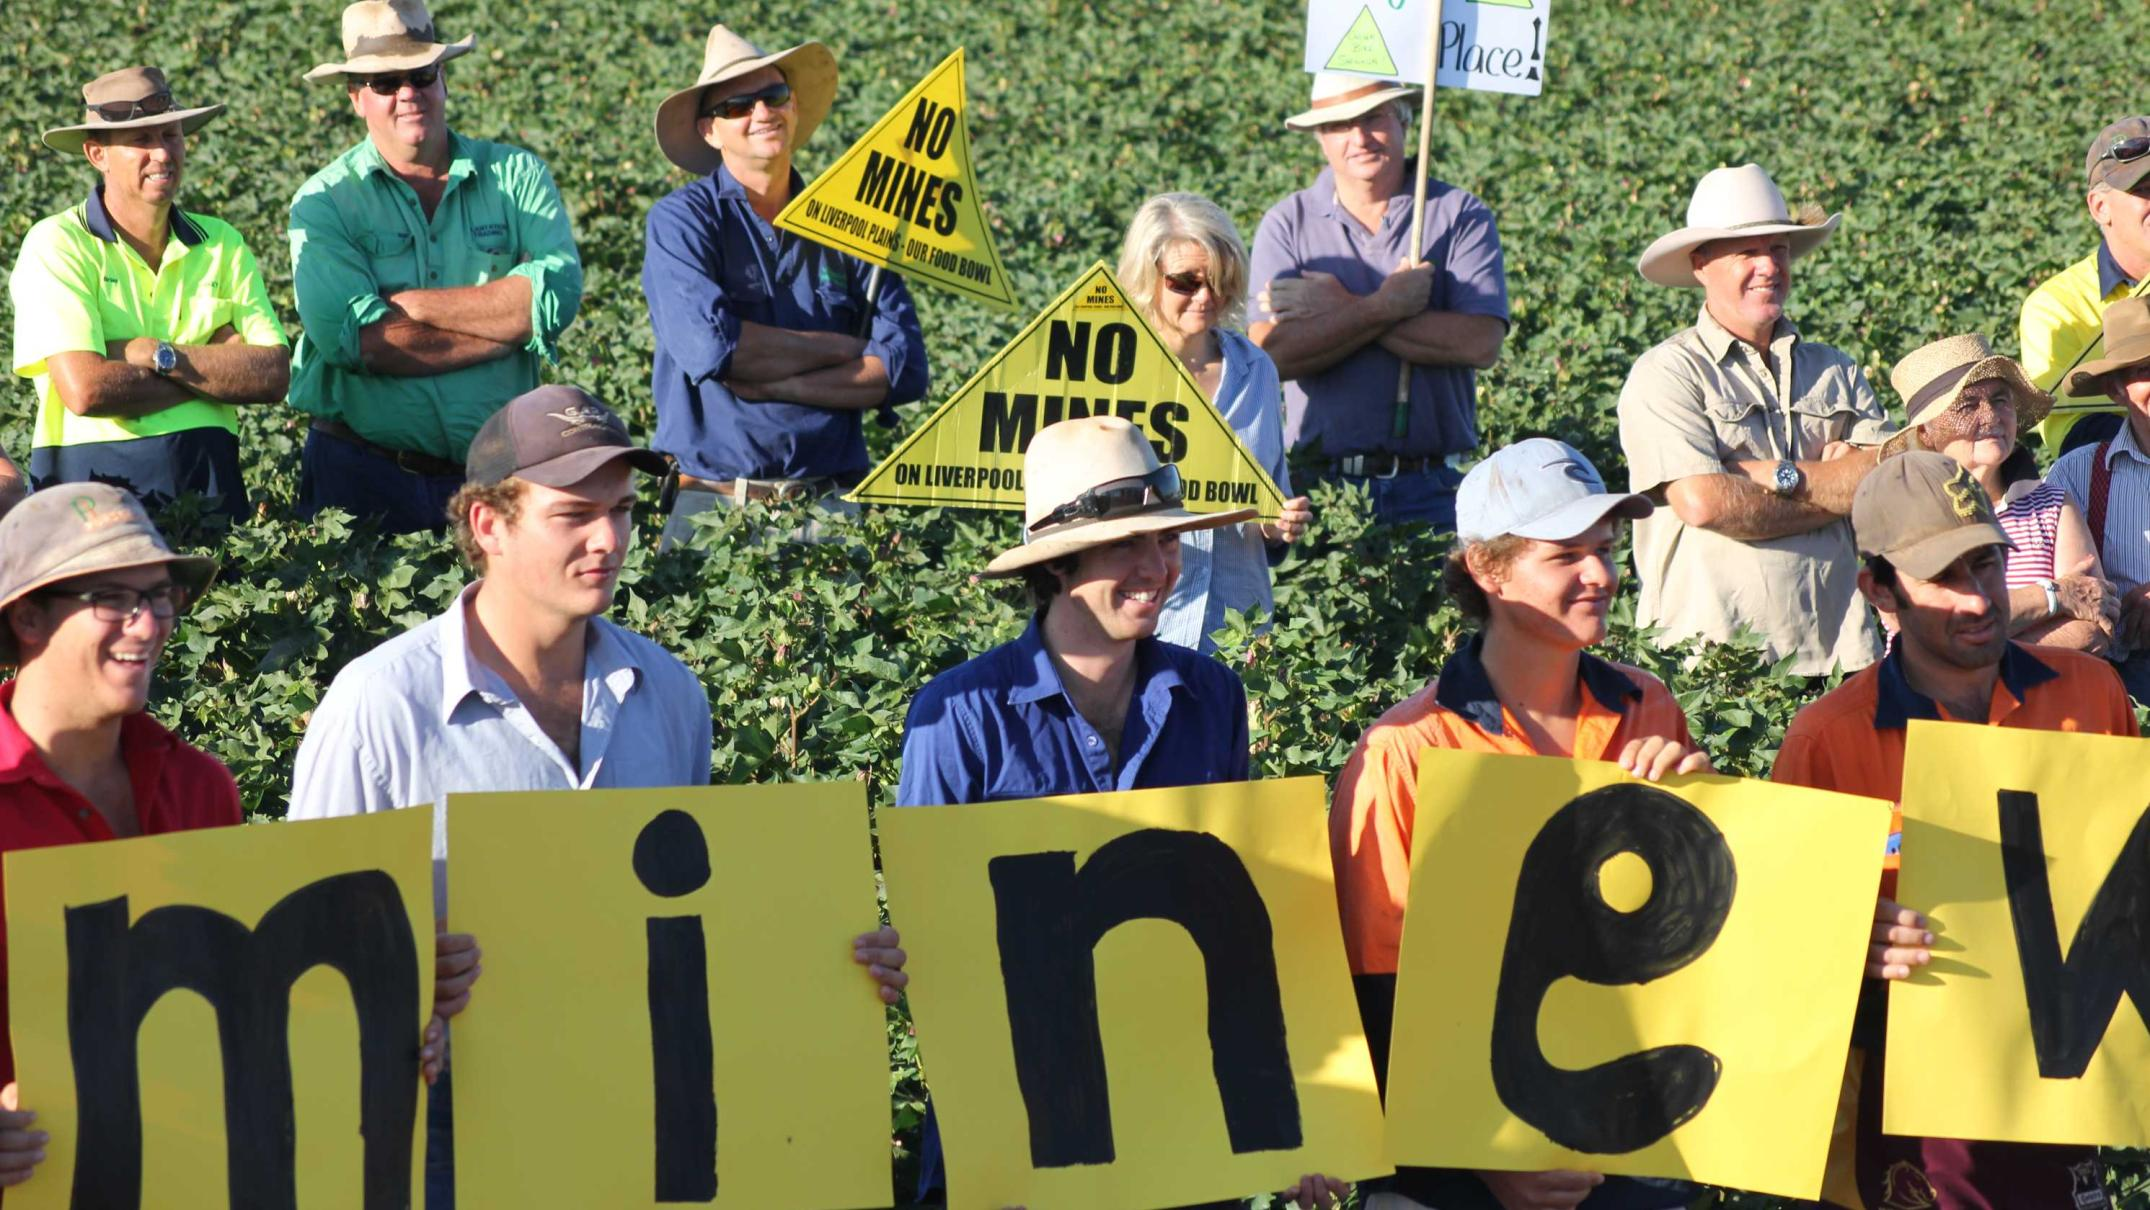 shenhua-tipped-to-make-'graceful-exit'-from-12-year-'debacle'-by-scrapping-mine-plan